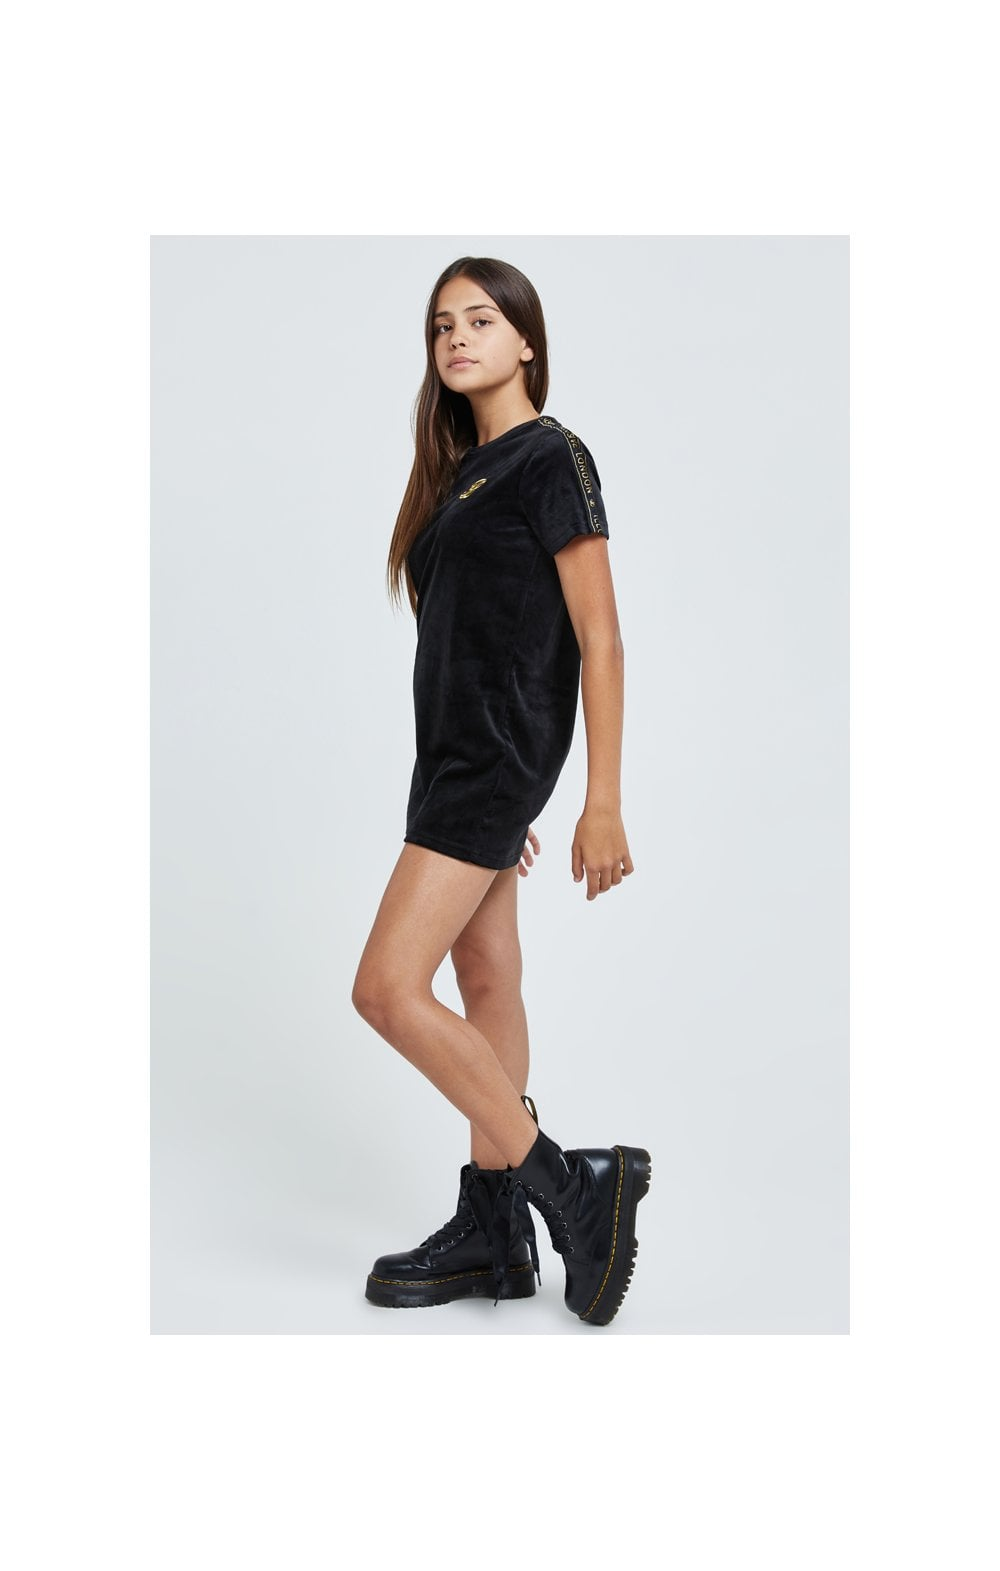 Illusive London Velour Tape Dress - Black (2)